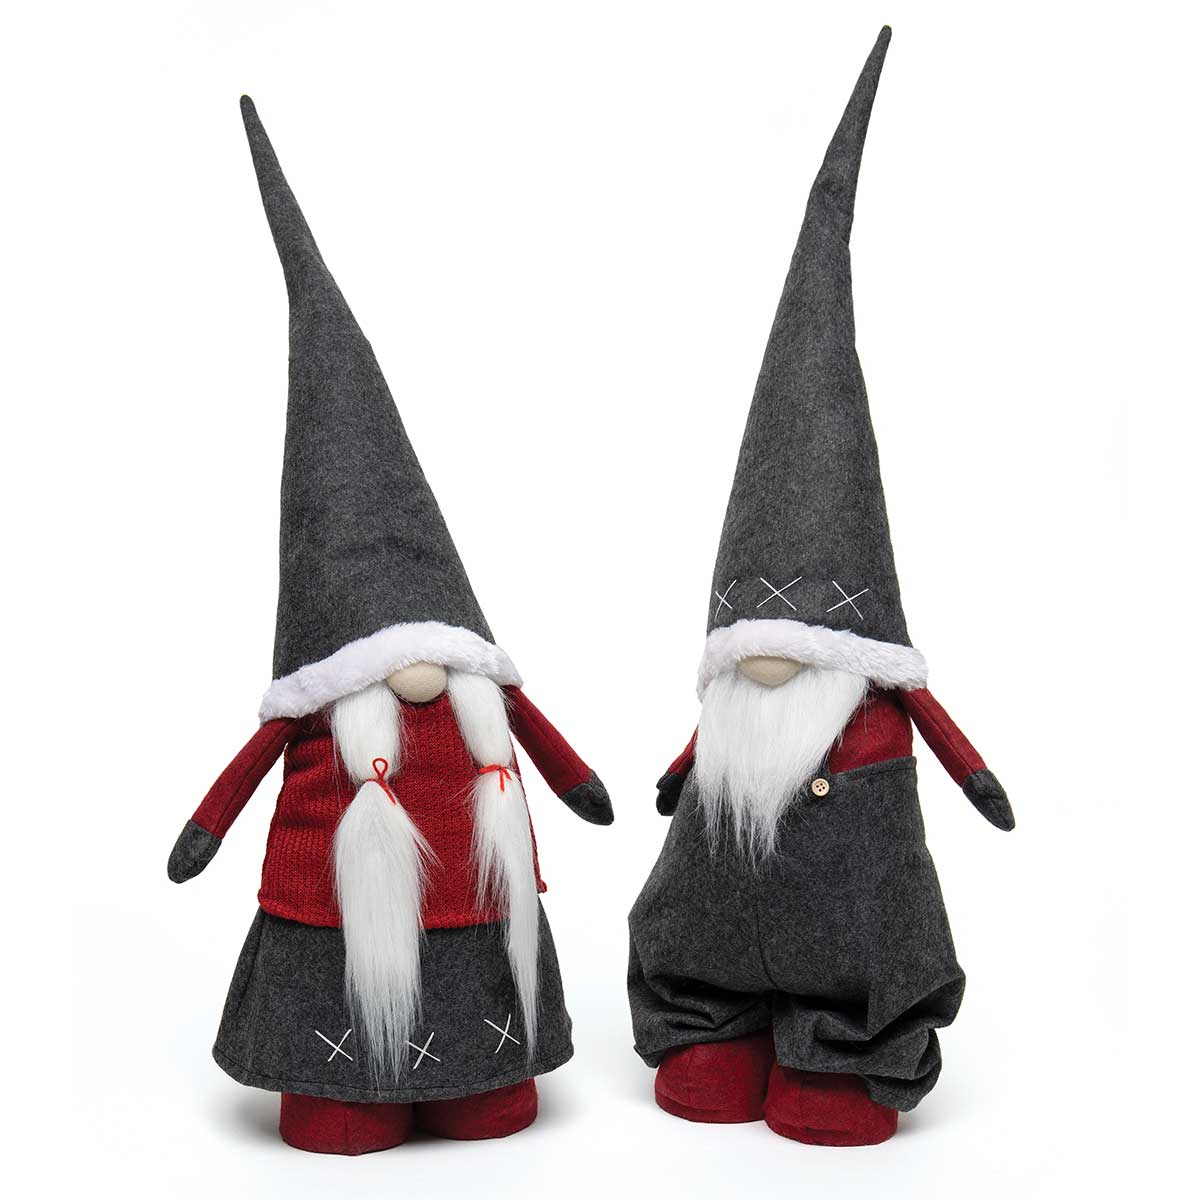 THE SWISS TWINS EXPANDABLE GNOME - I'M EXPANDABLE